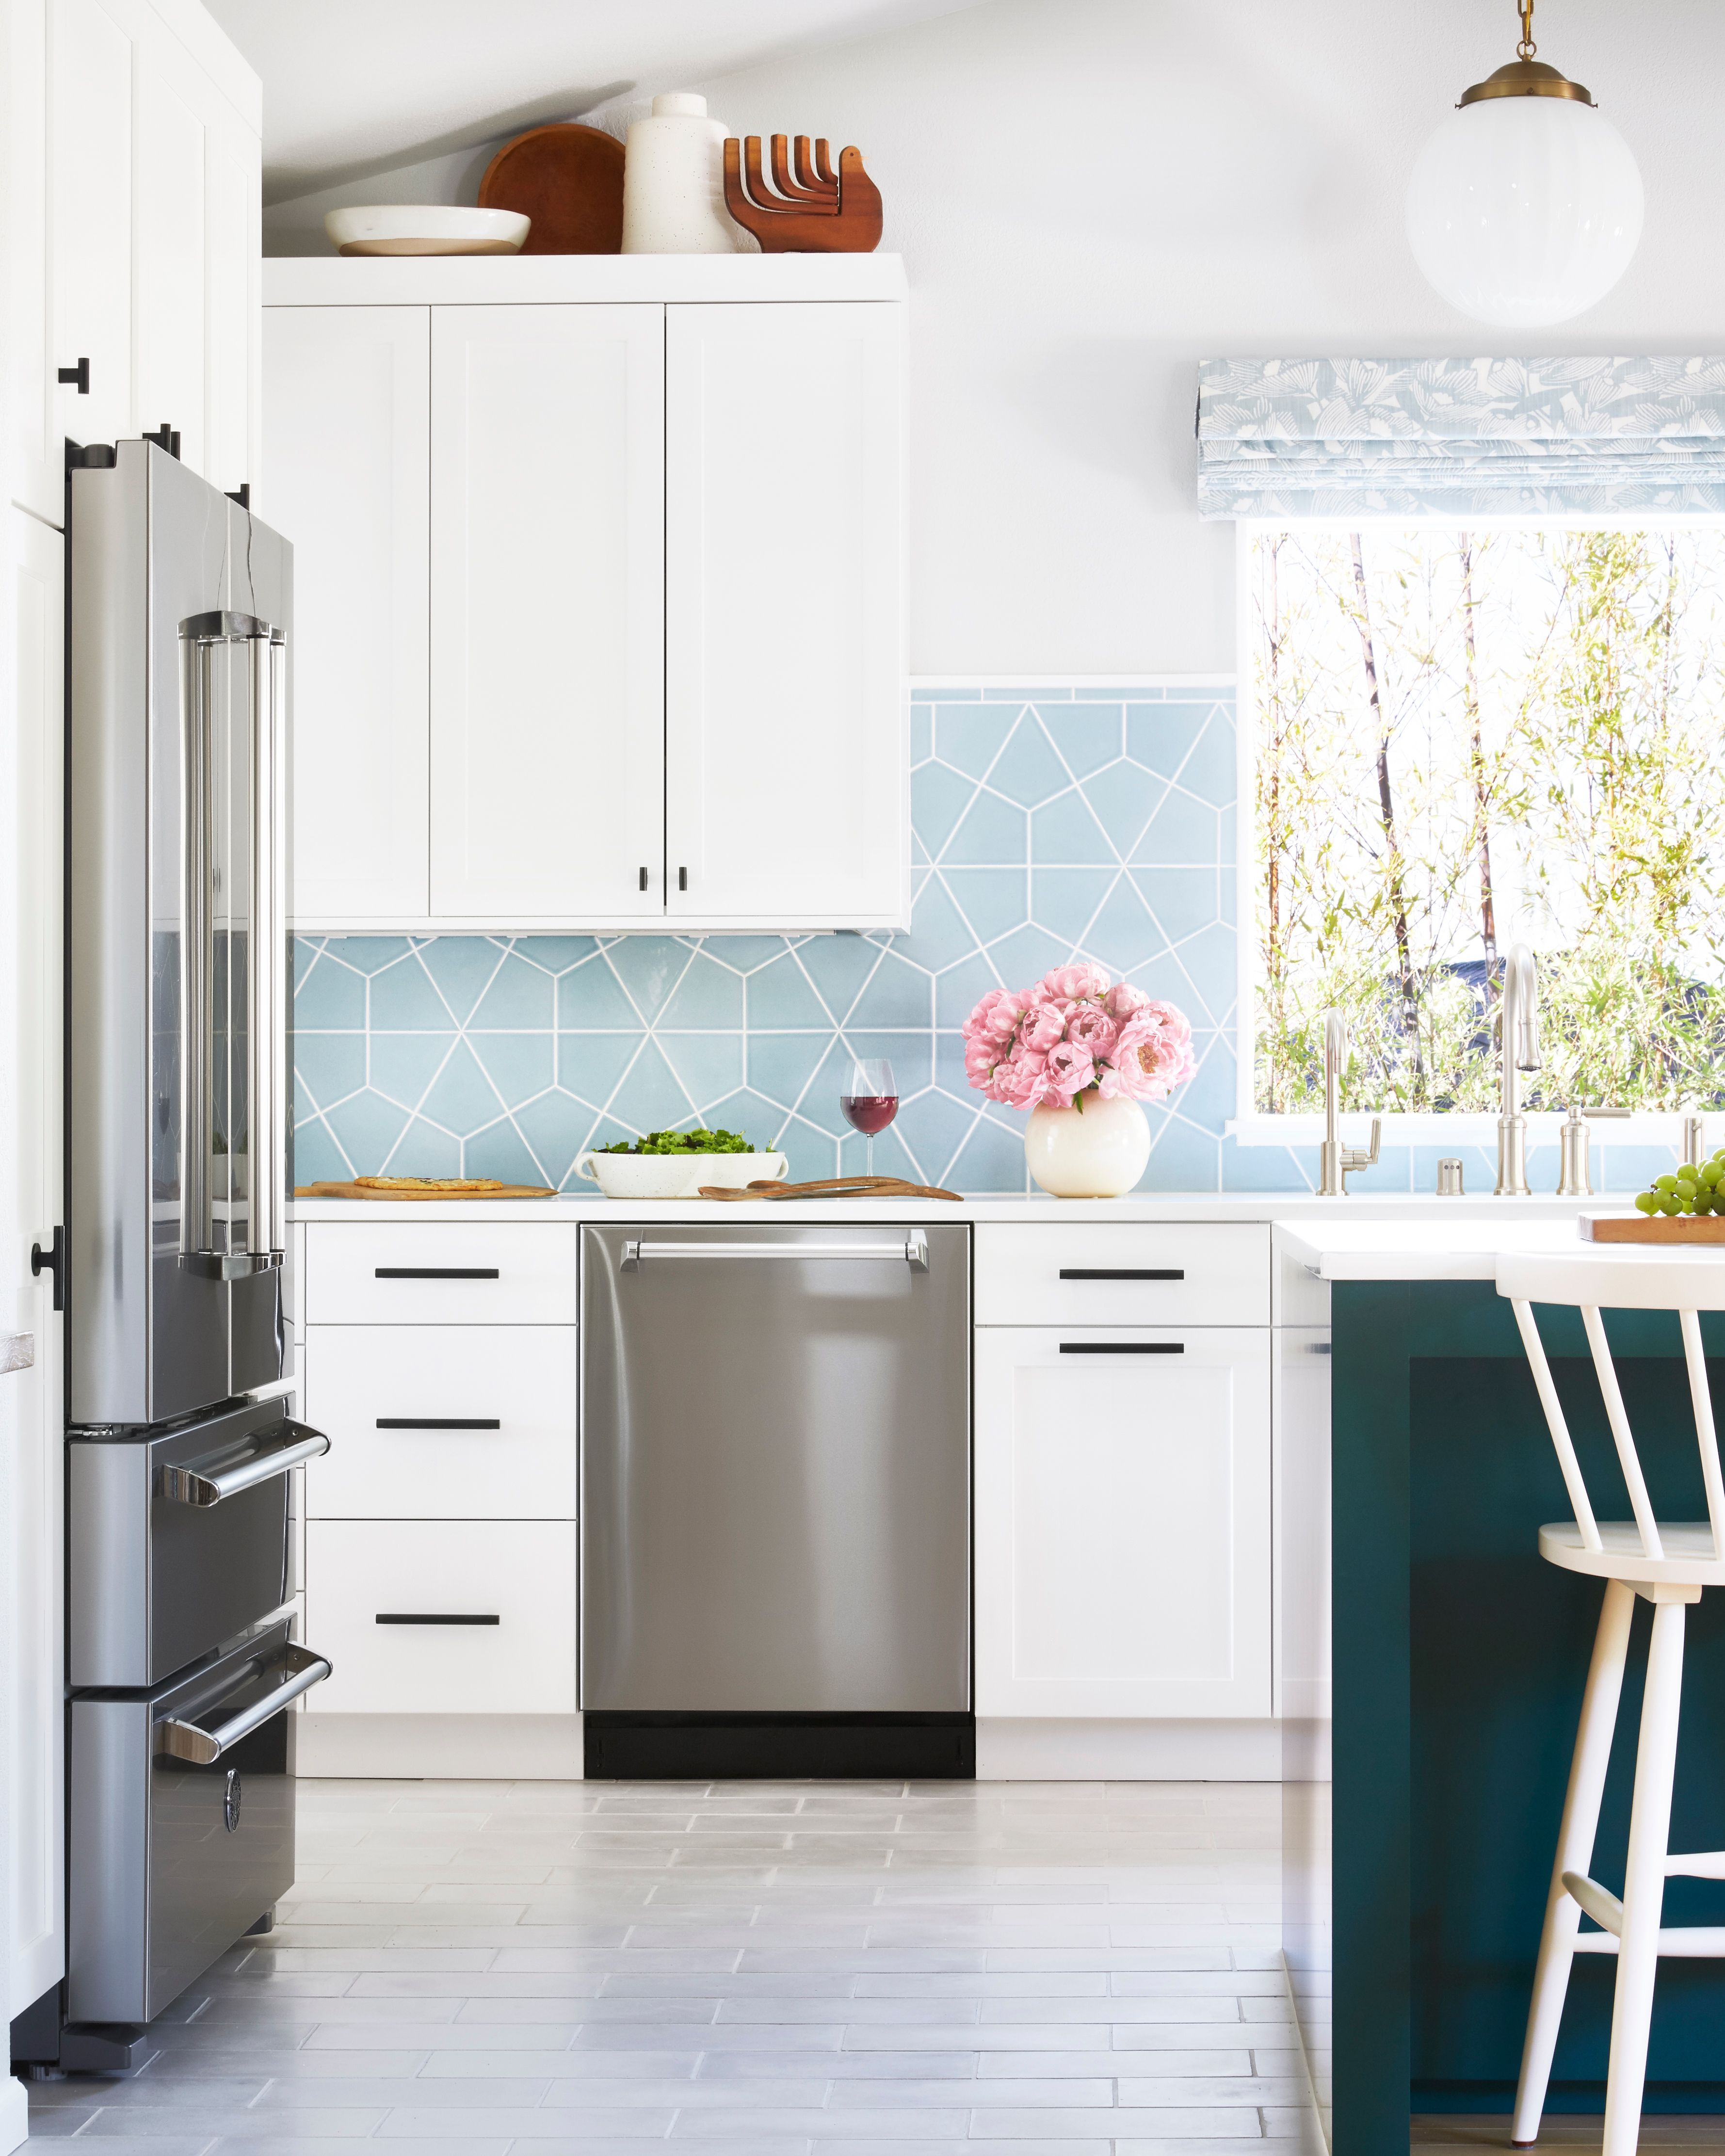 Hexite Tiles In Crater Lake Trimmed With 1x6 Flatliners Blue Kitchen Tiles Kitchen Inspiration Design Backsplash For White Cabinets